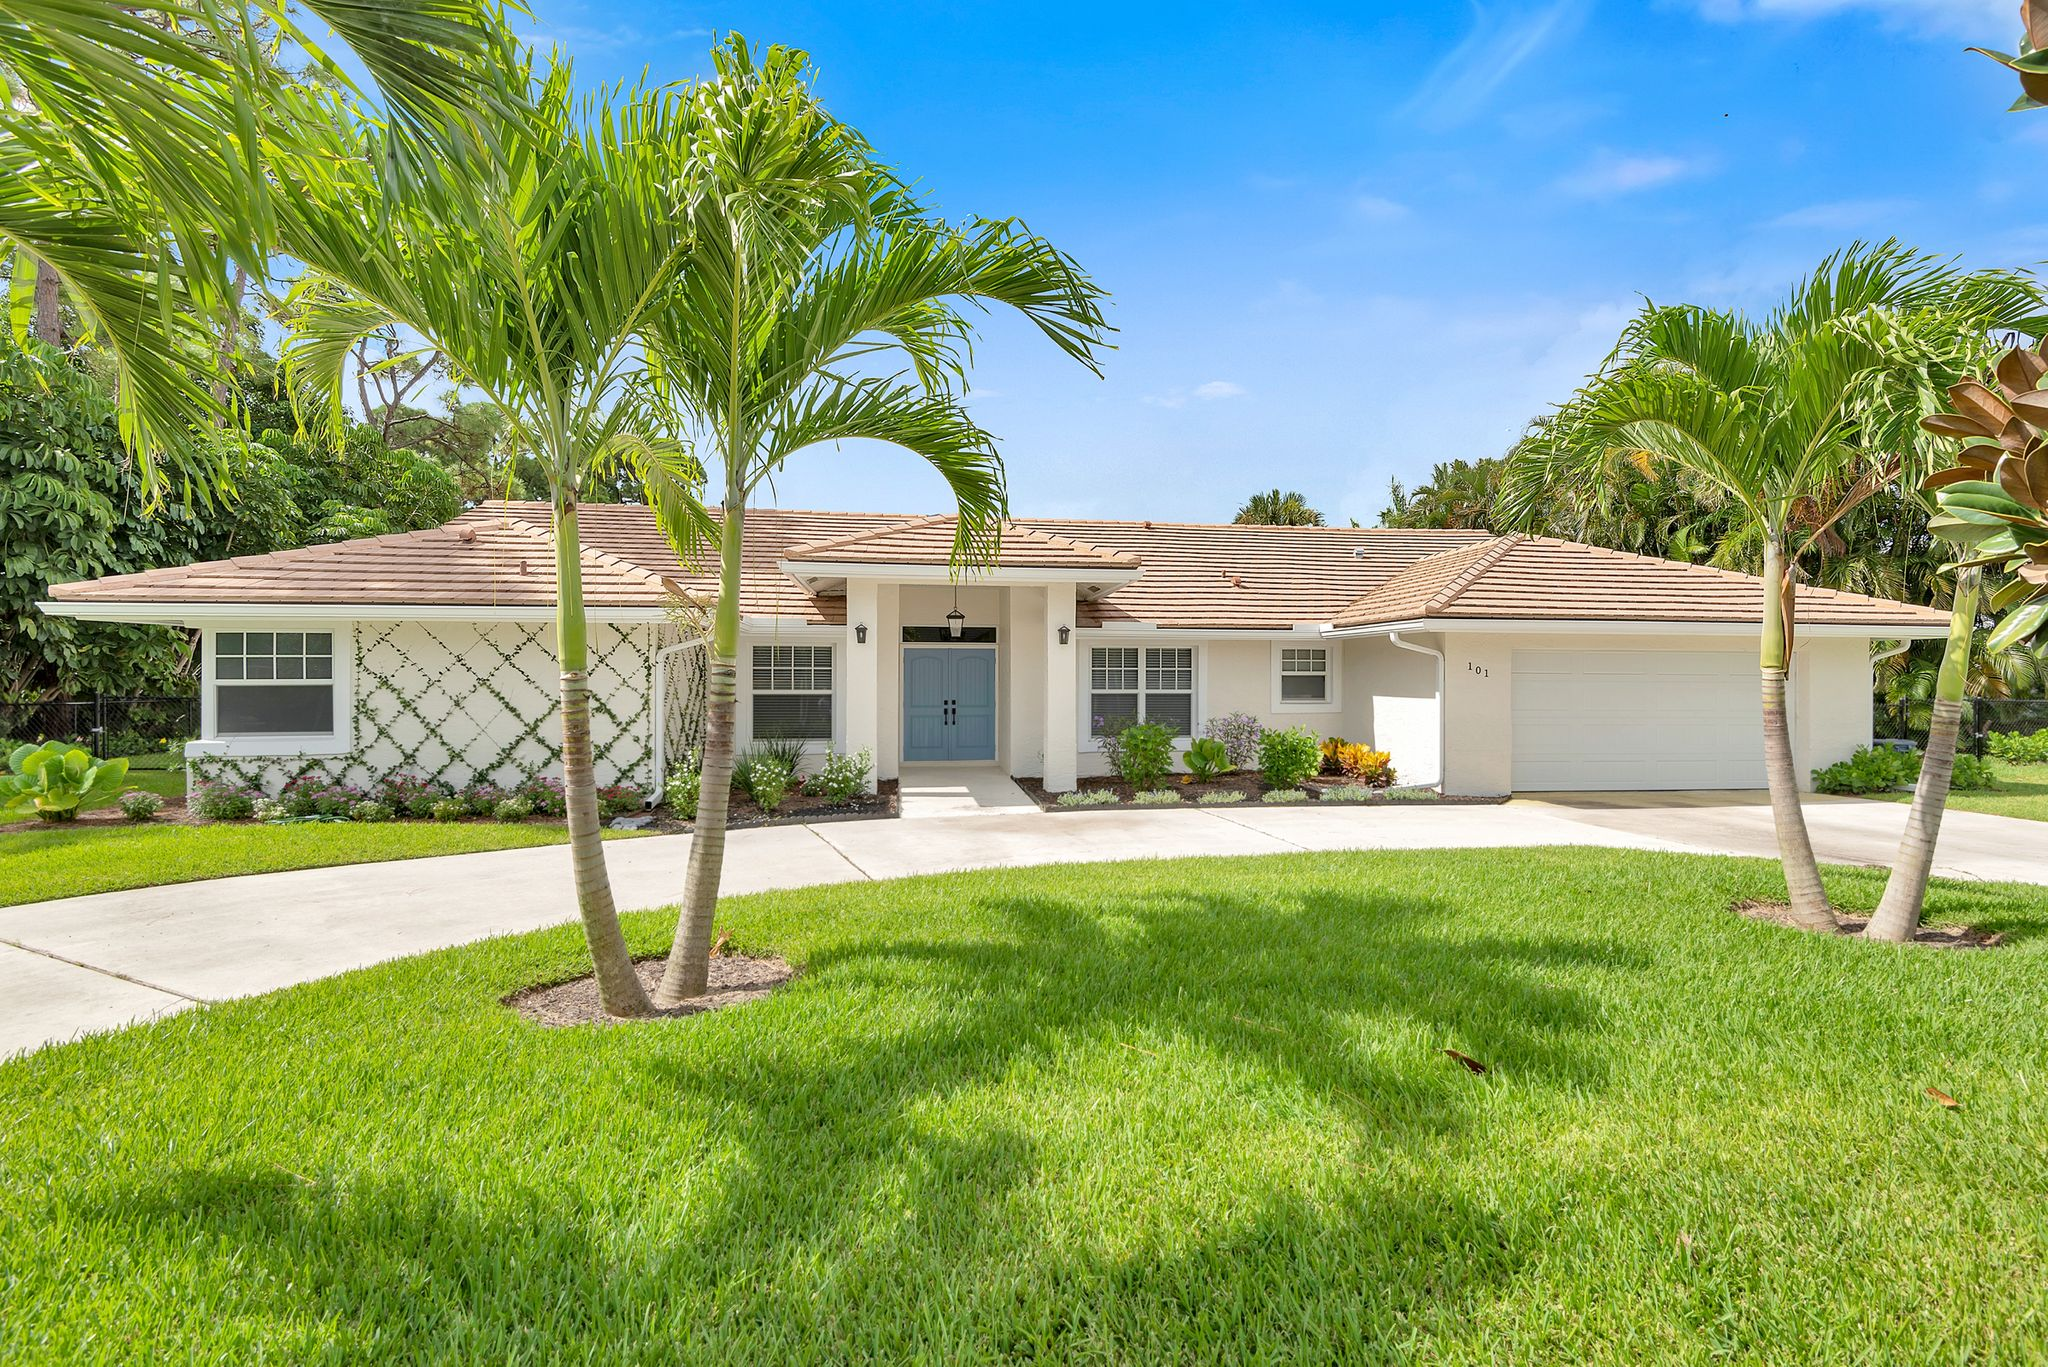 Exterior home remodel featuring brand new impact windows and doors in sunny South Florida.